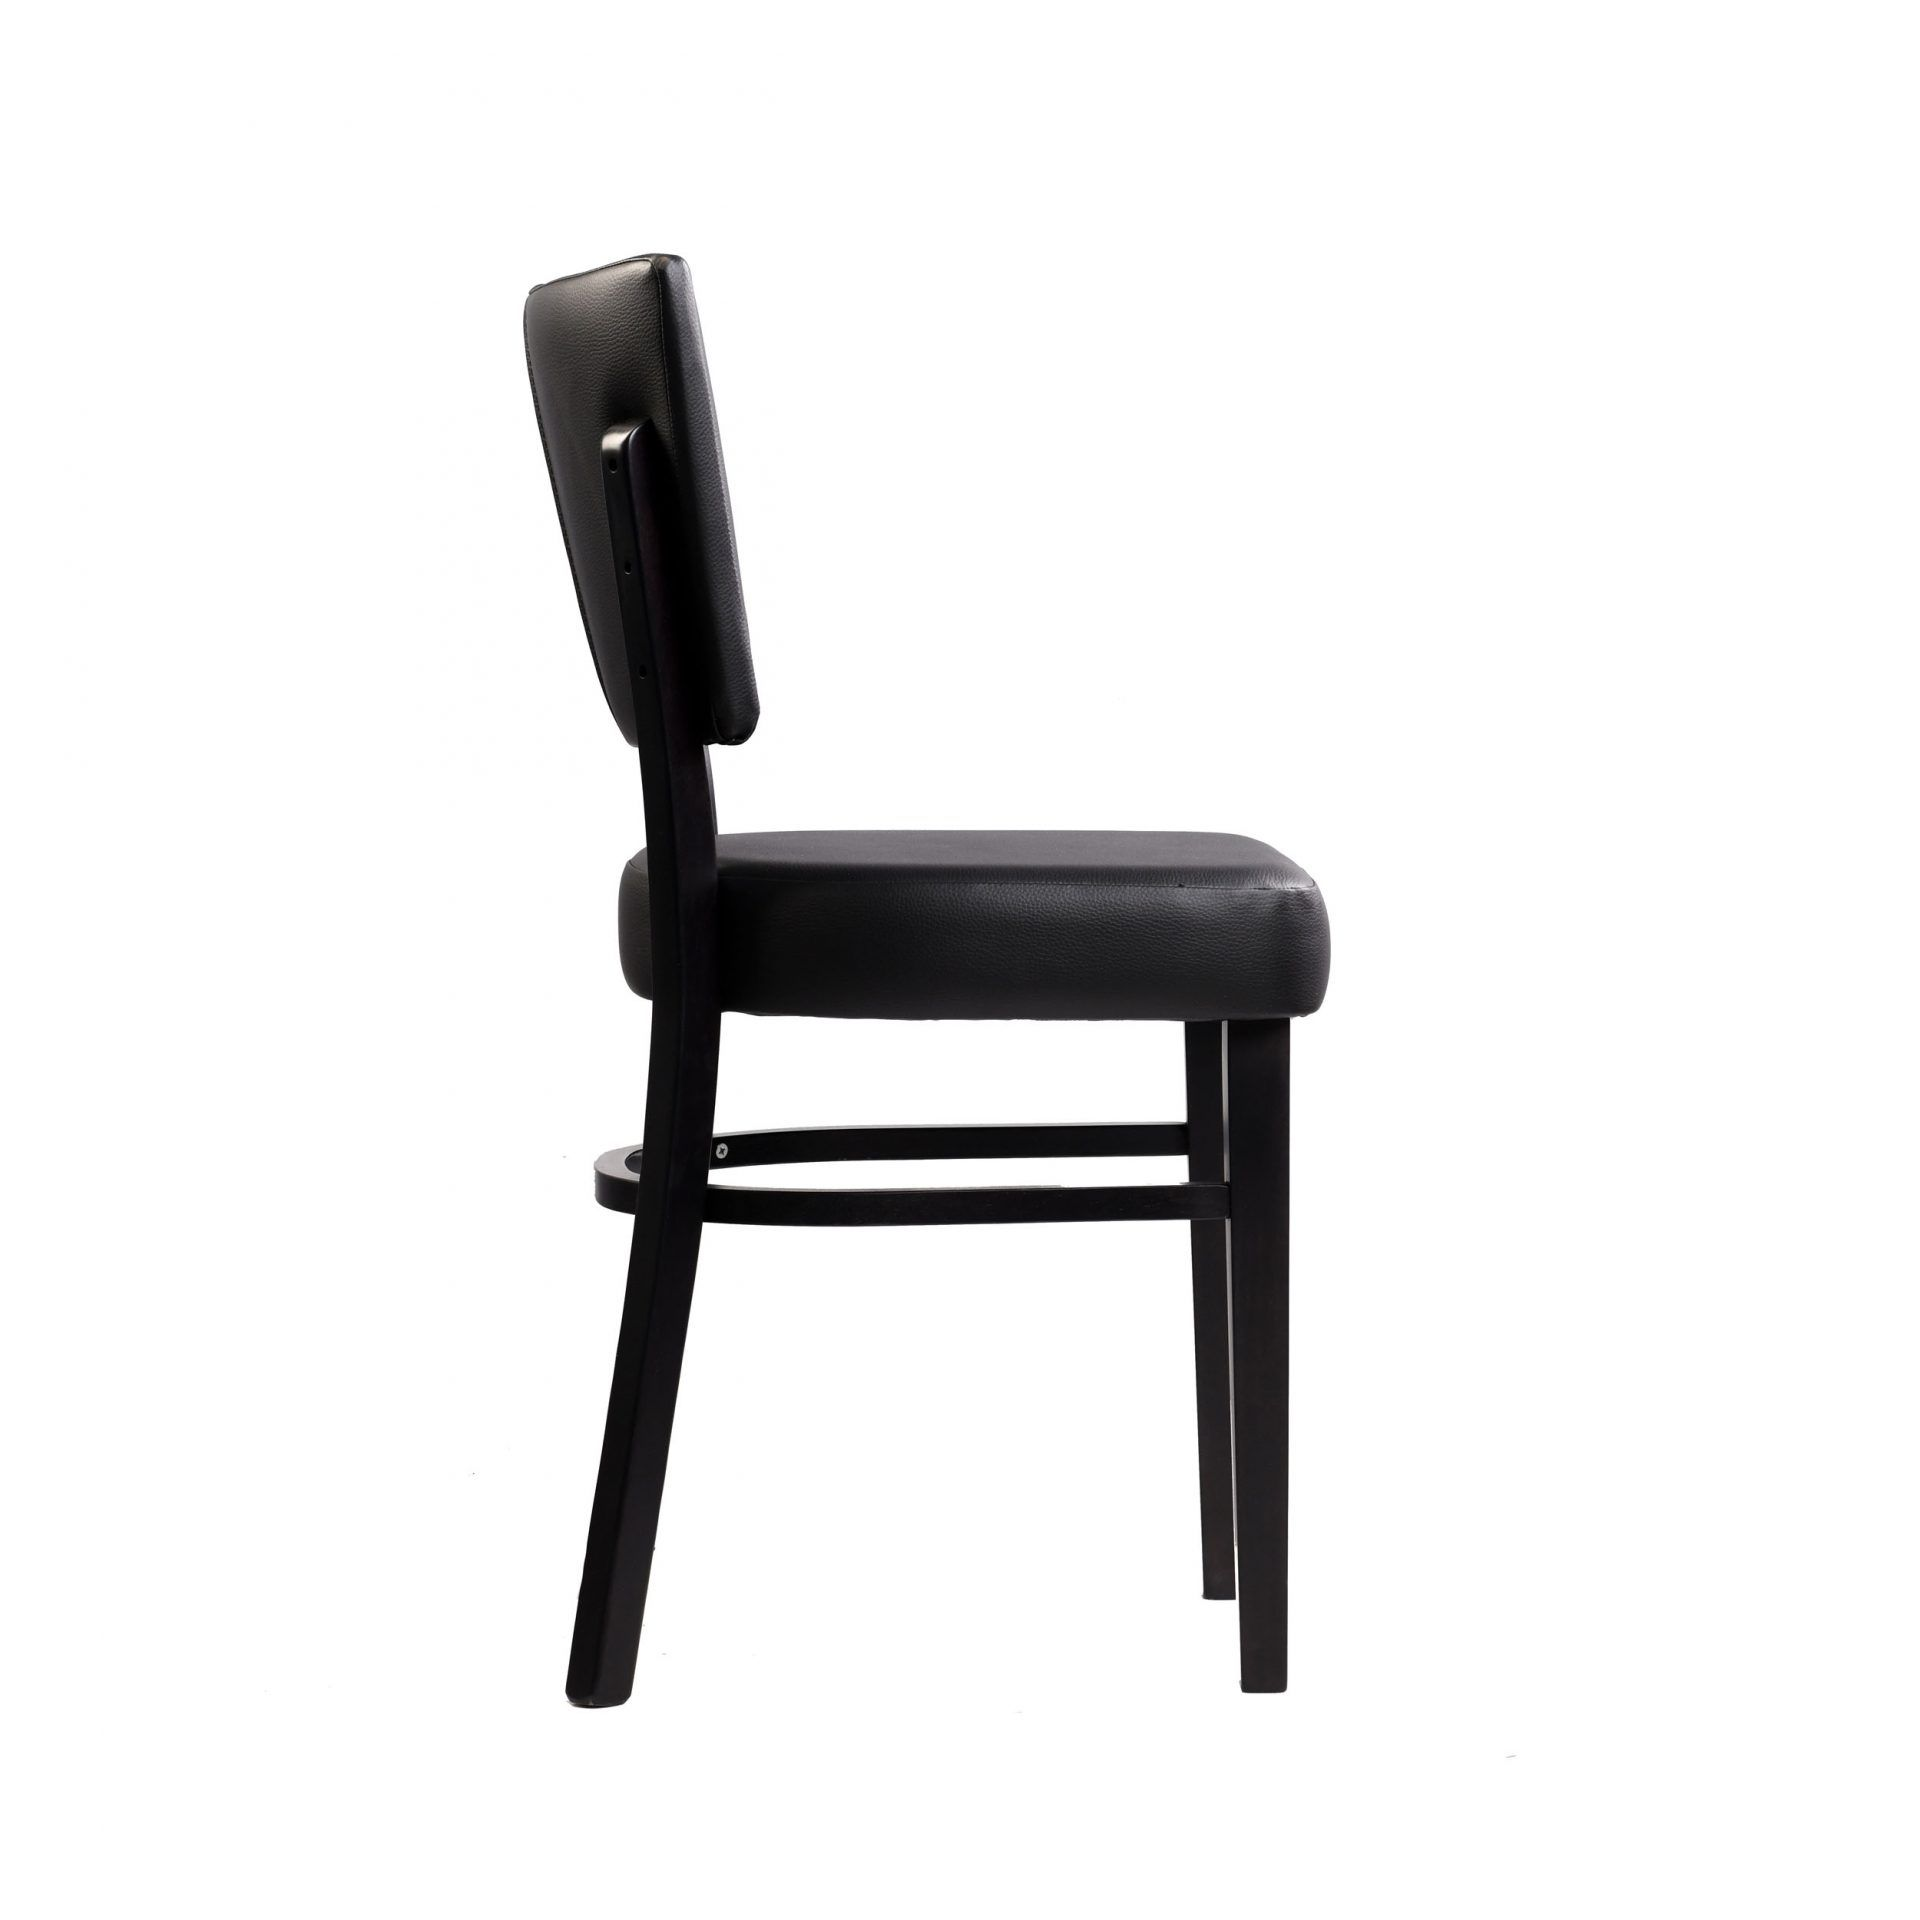 memphis chair black vinyl seat and backrest wenge frame right